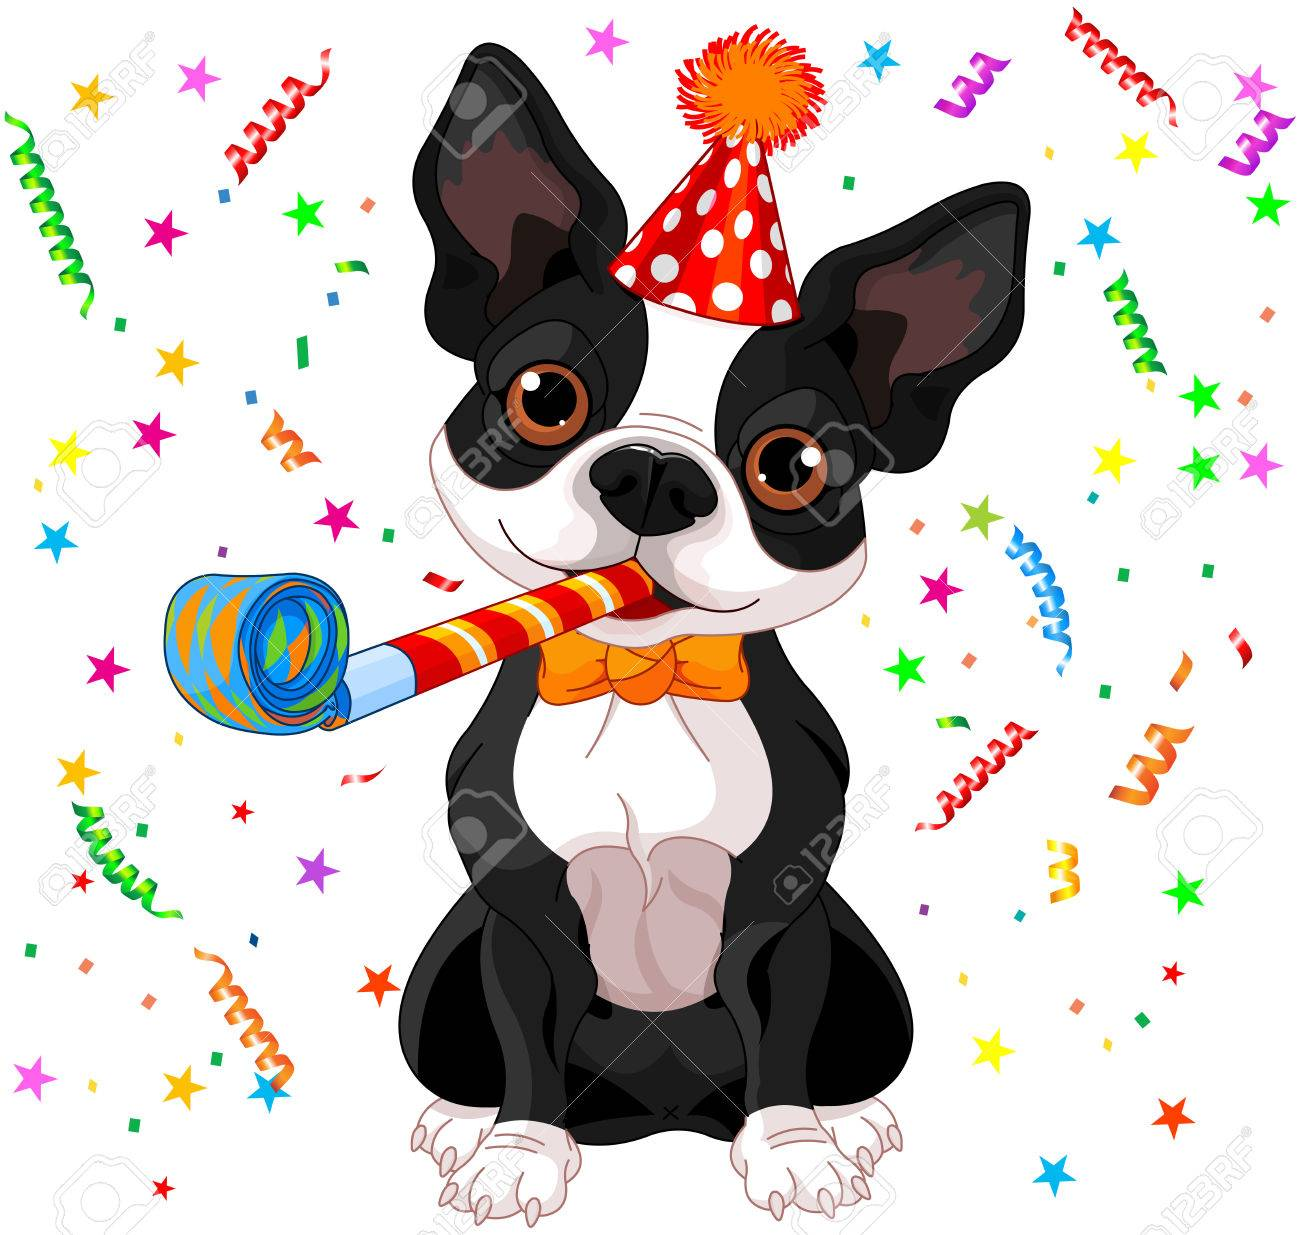 Maladie d'Addison ou insuffisance surrénalienne ou hypoadrénocorticisme 35588778-illustration-of-cute-boston-terrier-celebrating